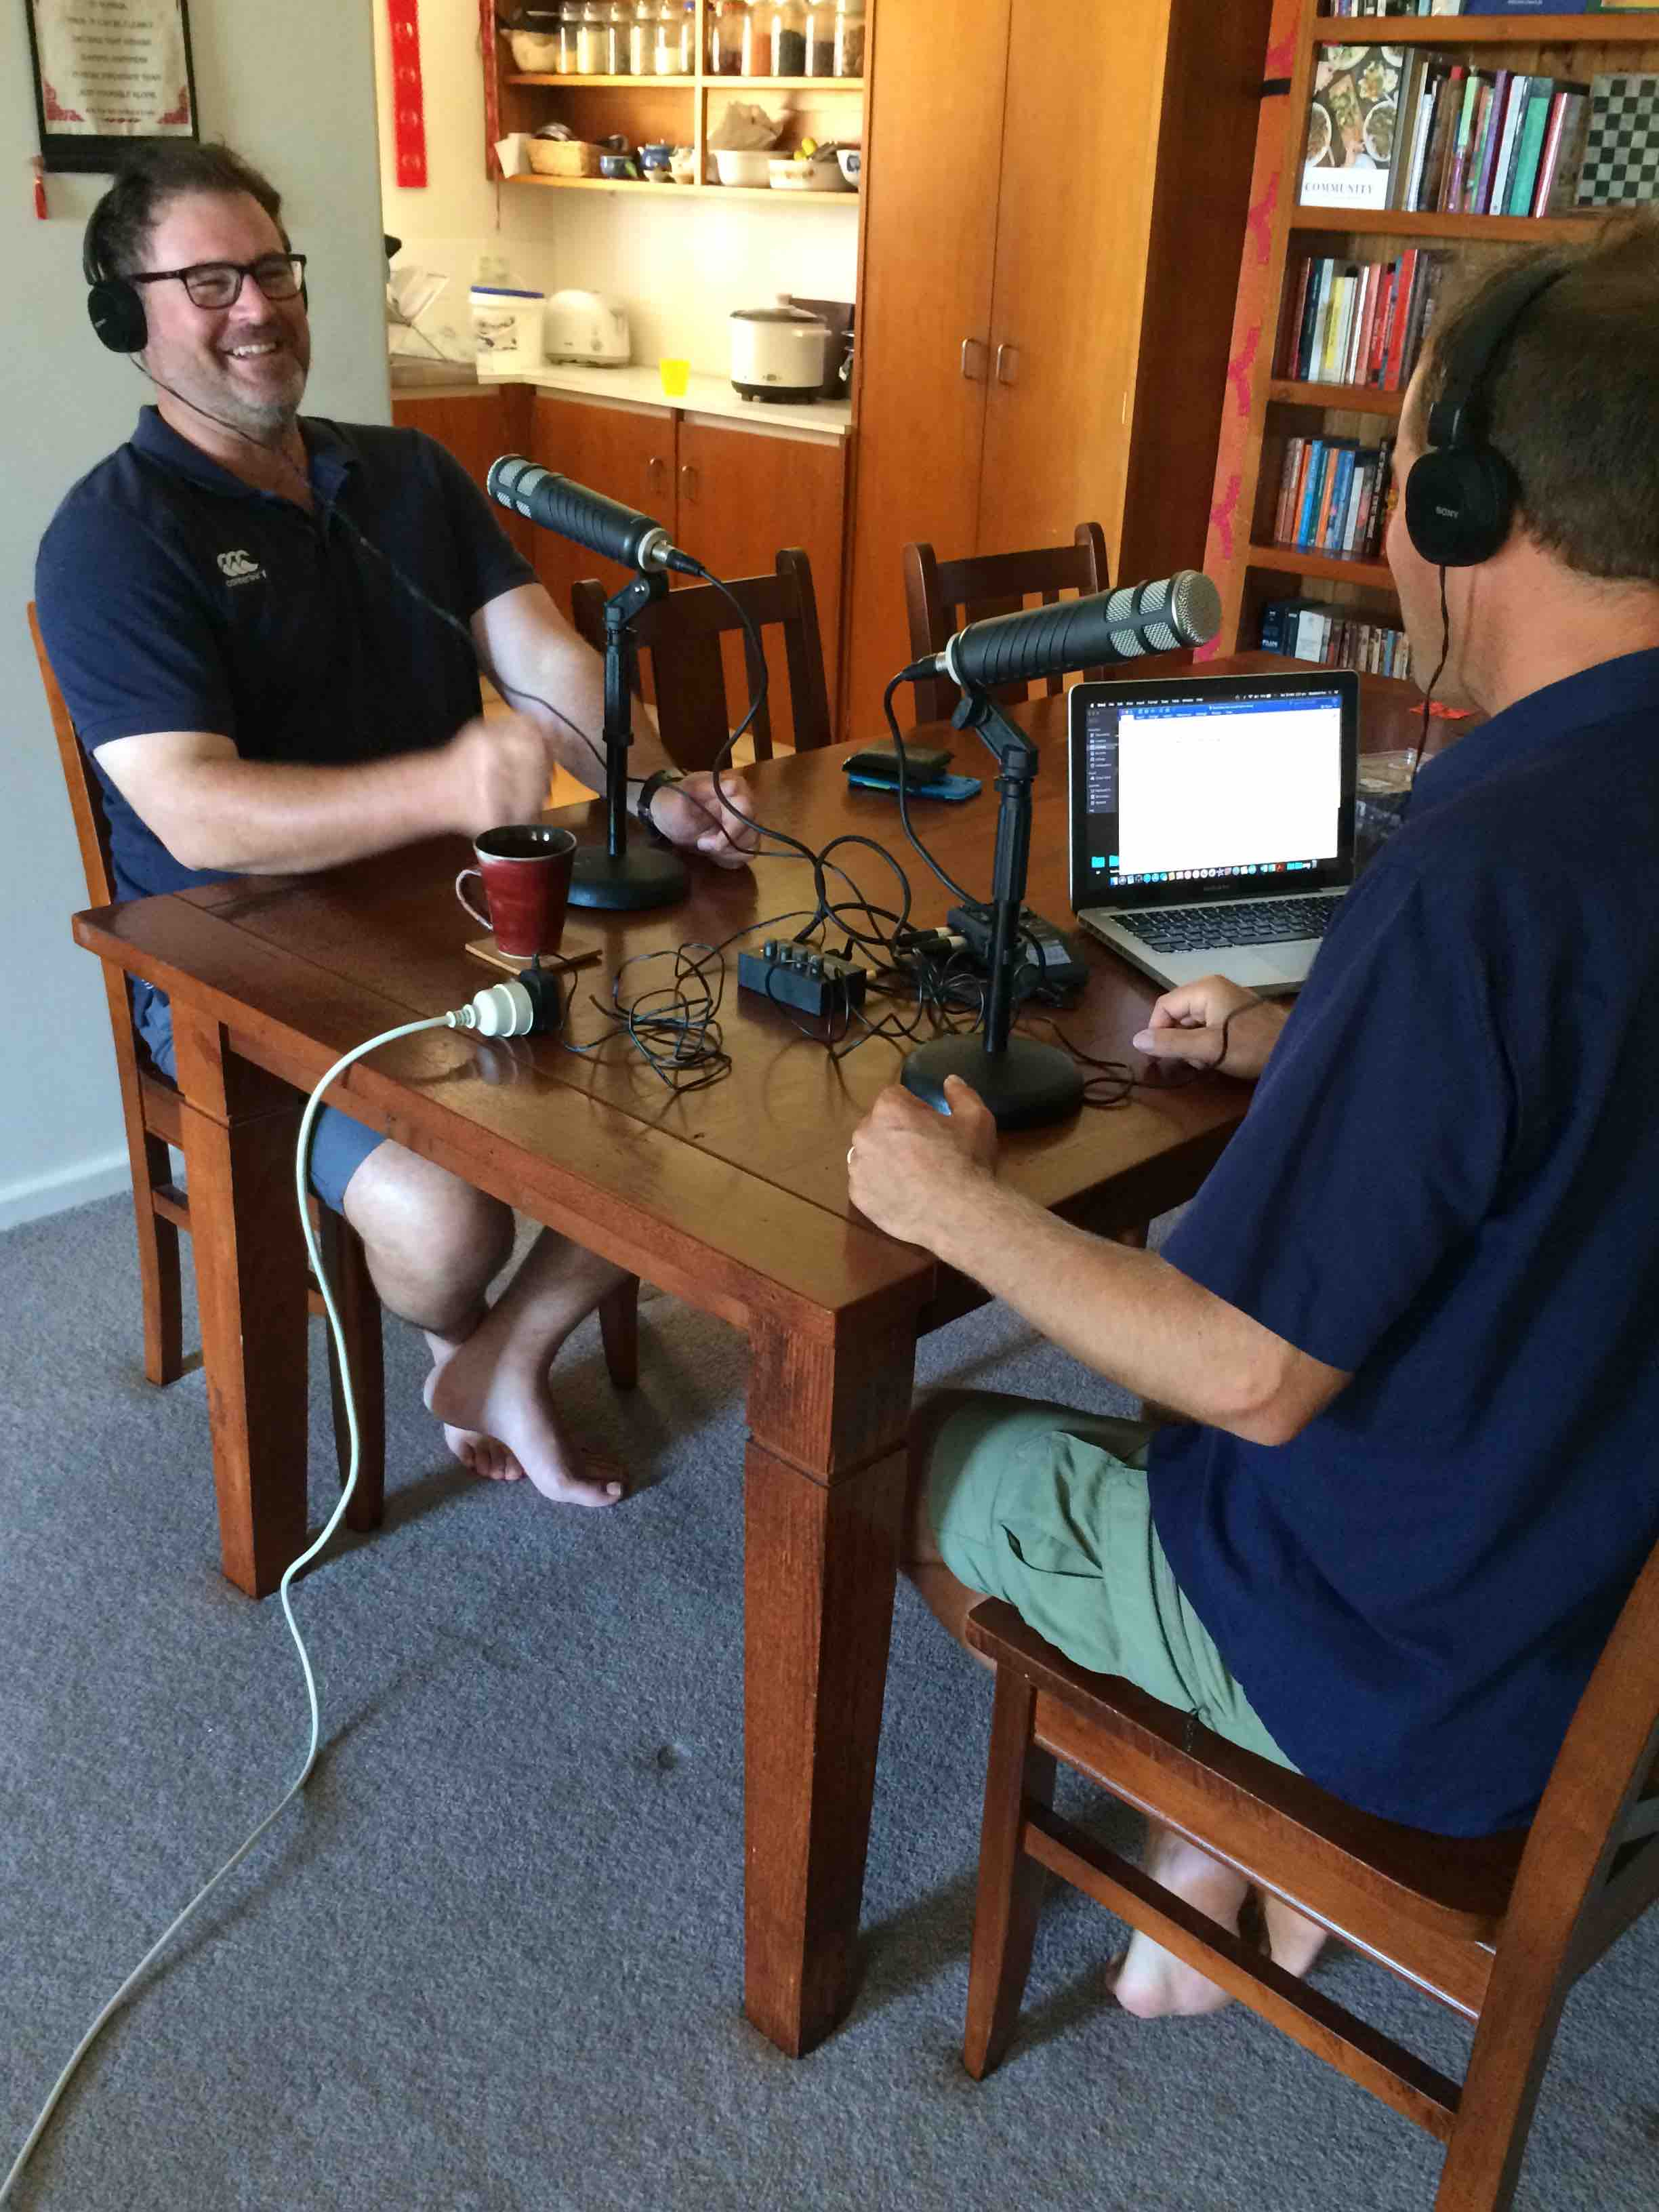 David McLean in conversation with Anthony for this podcast. Pic: Olivia Cheng.